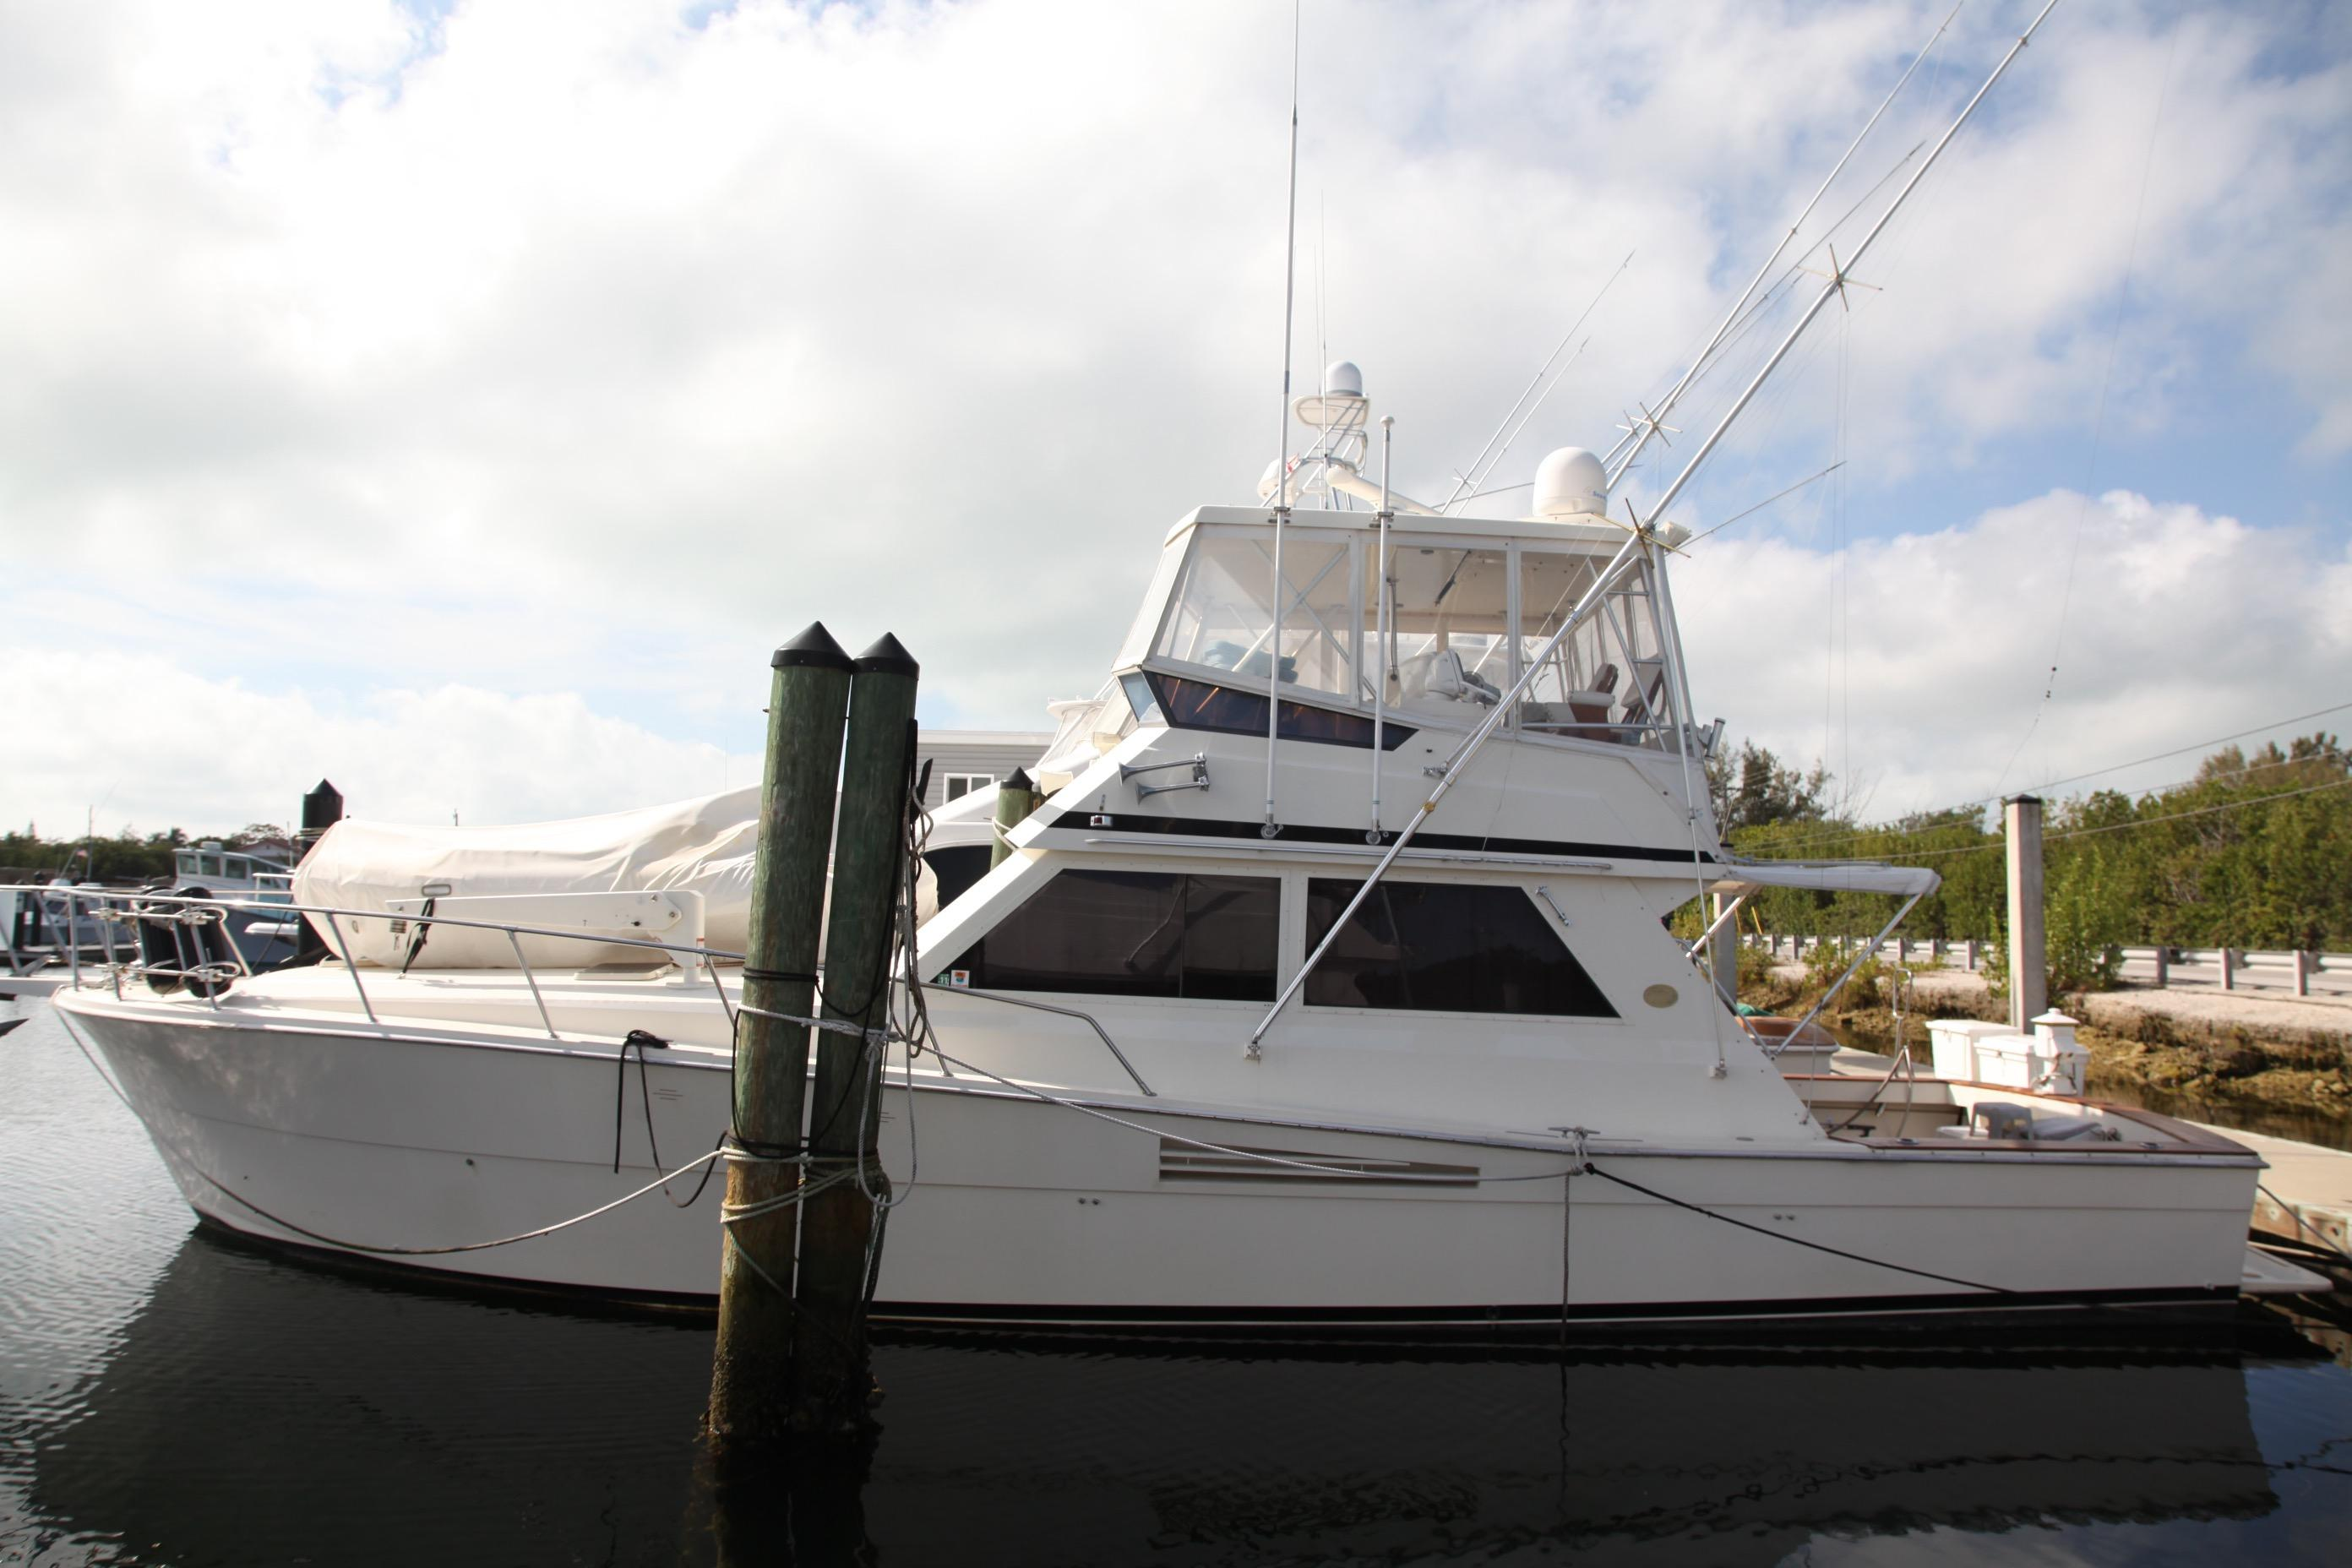 48 viking yachts 1988 for sale in key largo florida us for Ocean yachts 48 motor yacht for sale